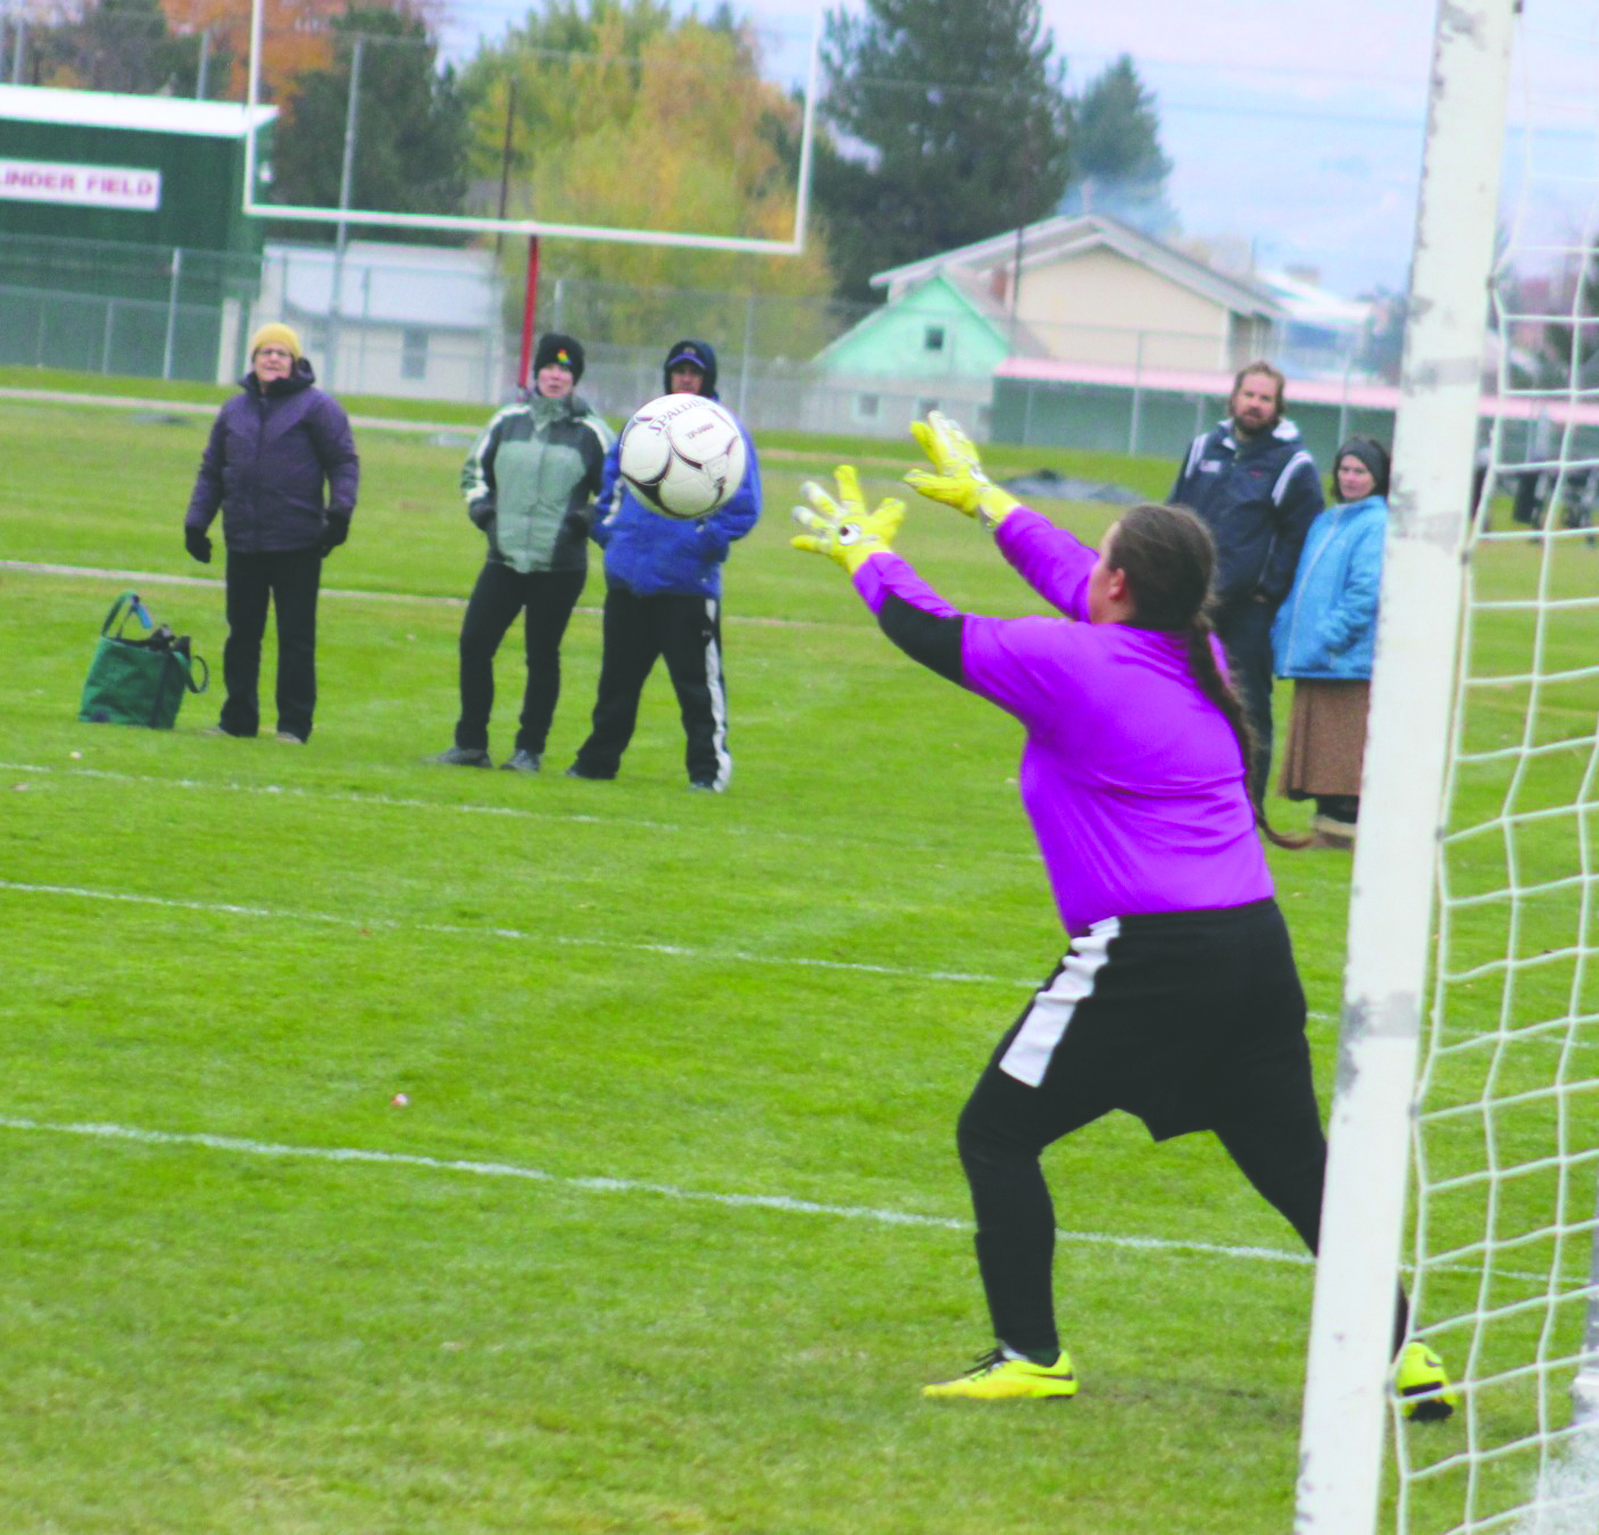 Is Liberty Bell goalkeeper Lauren Ochoa, who is there to prevent a sure score.